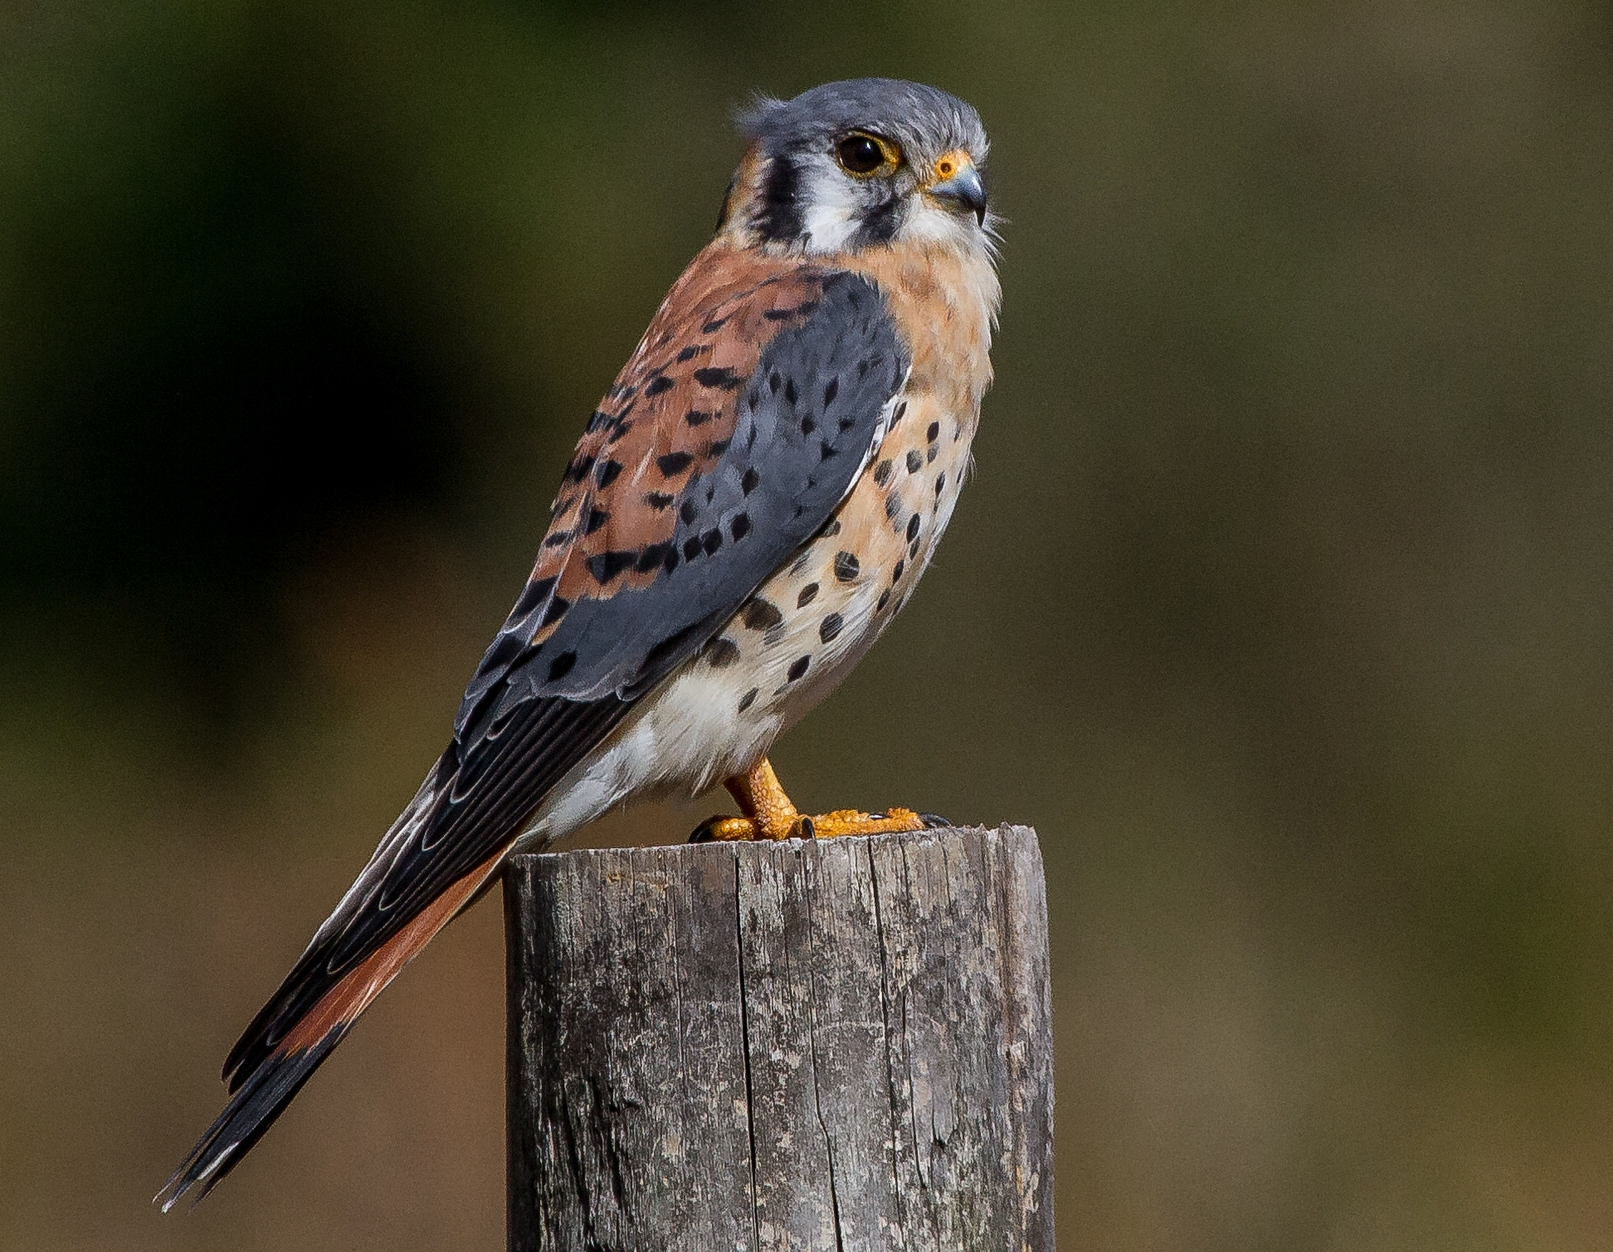 10/10 side-eye, because kestrels are tiny furious fluffs. Image by  Andy Morffew .